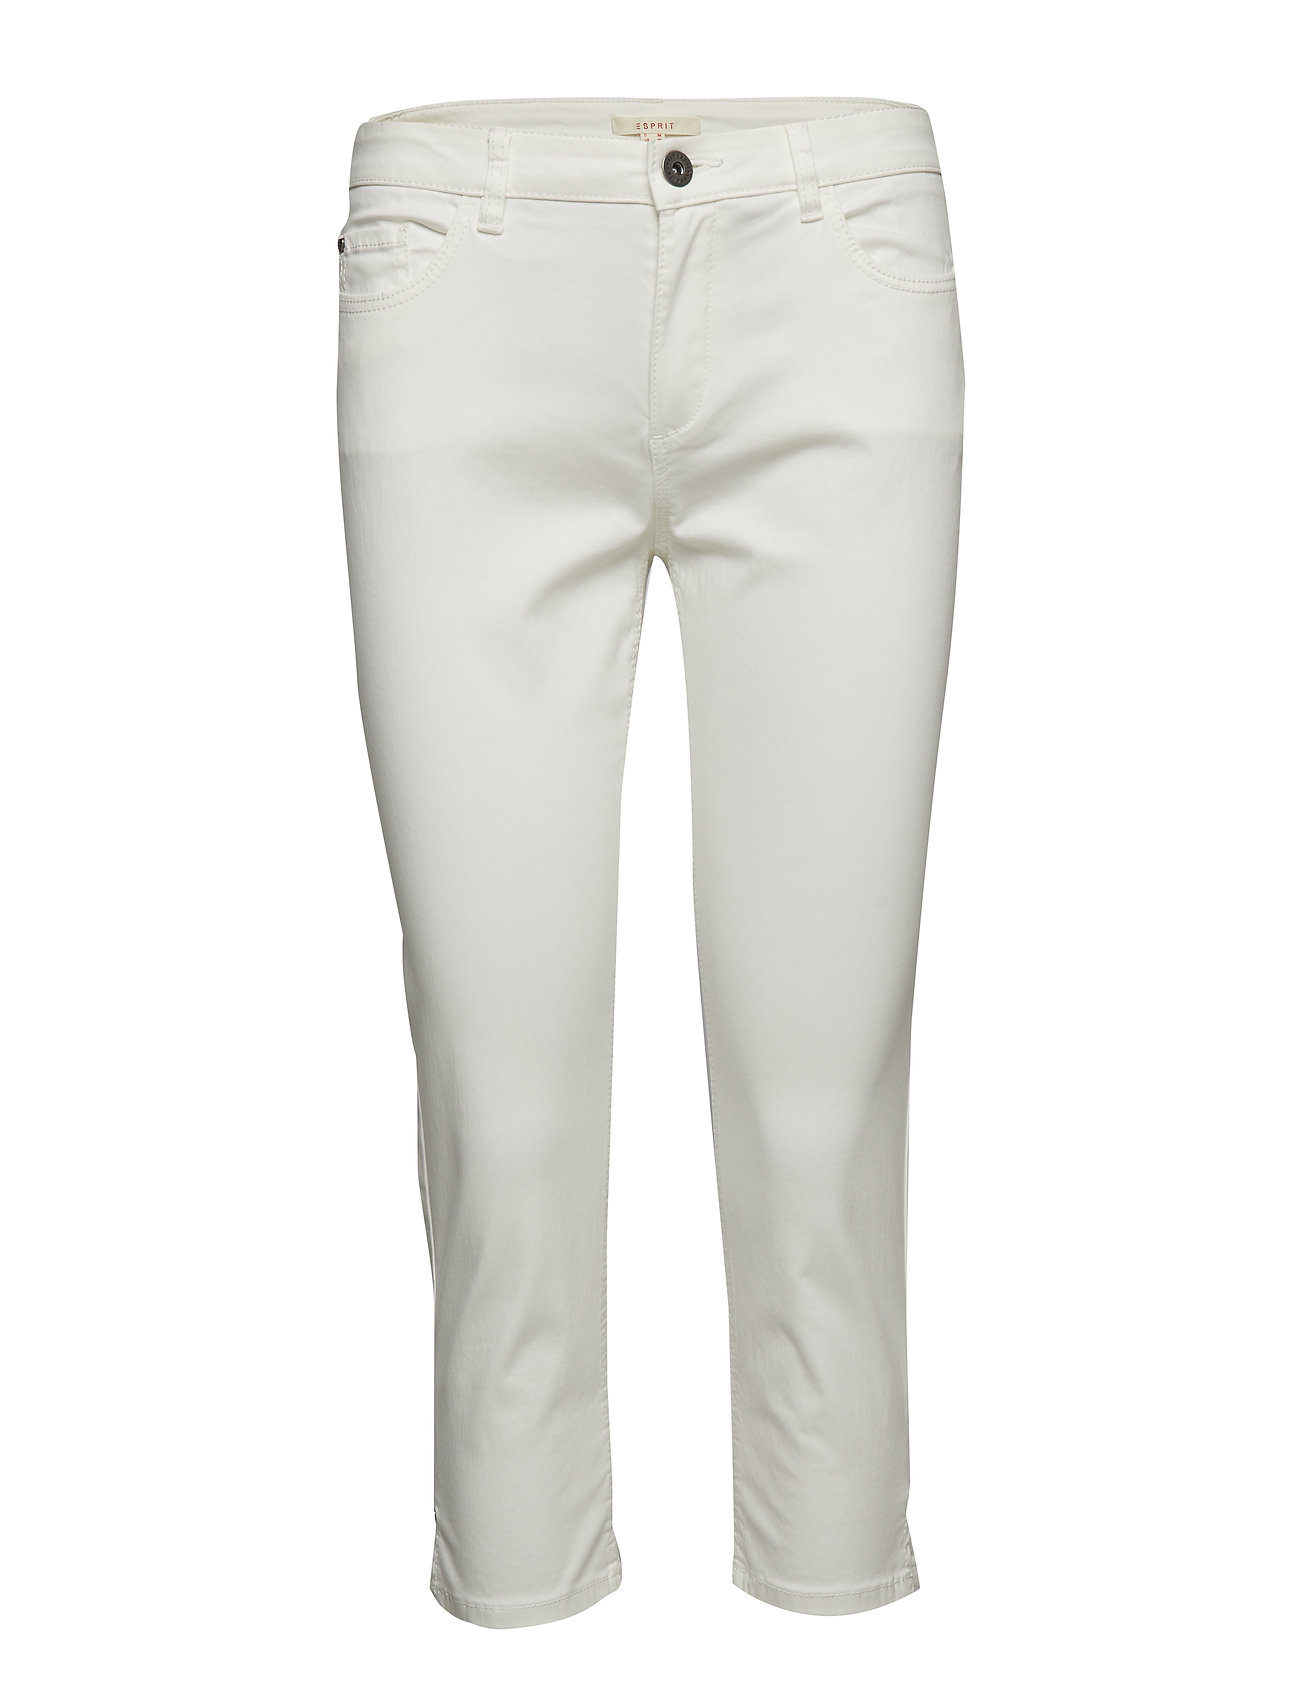 Esprit Casual Pants woven - OFF WHITE